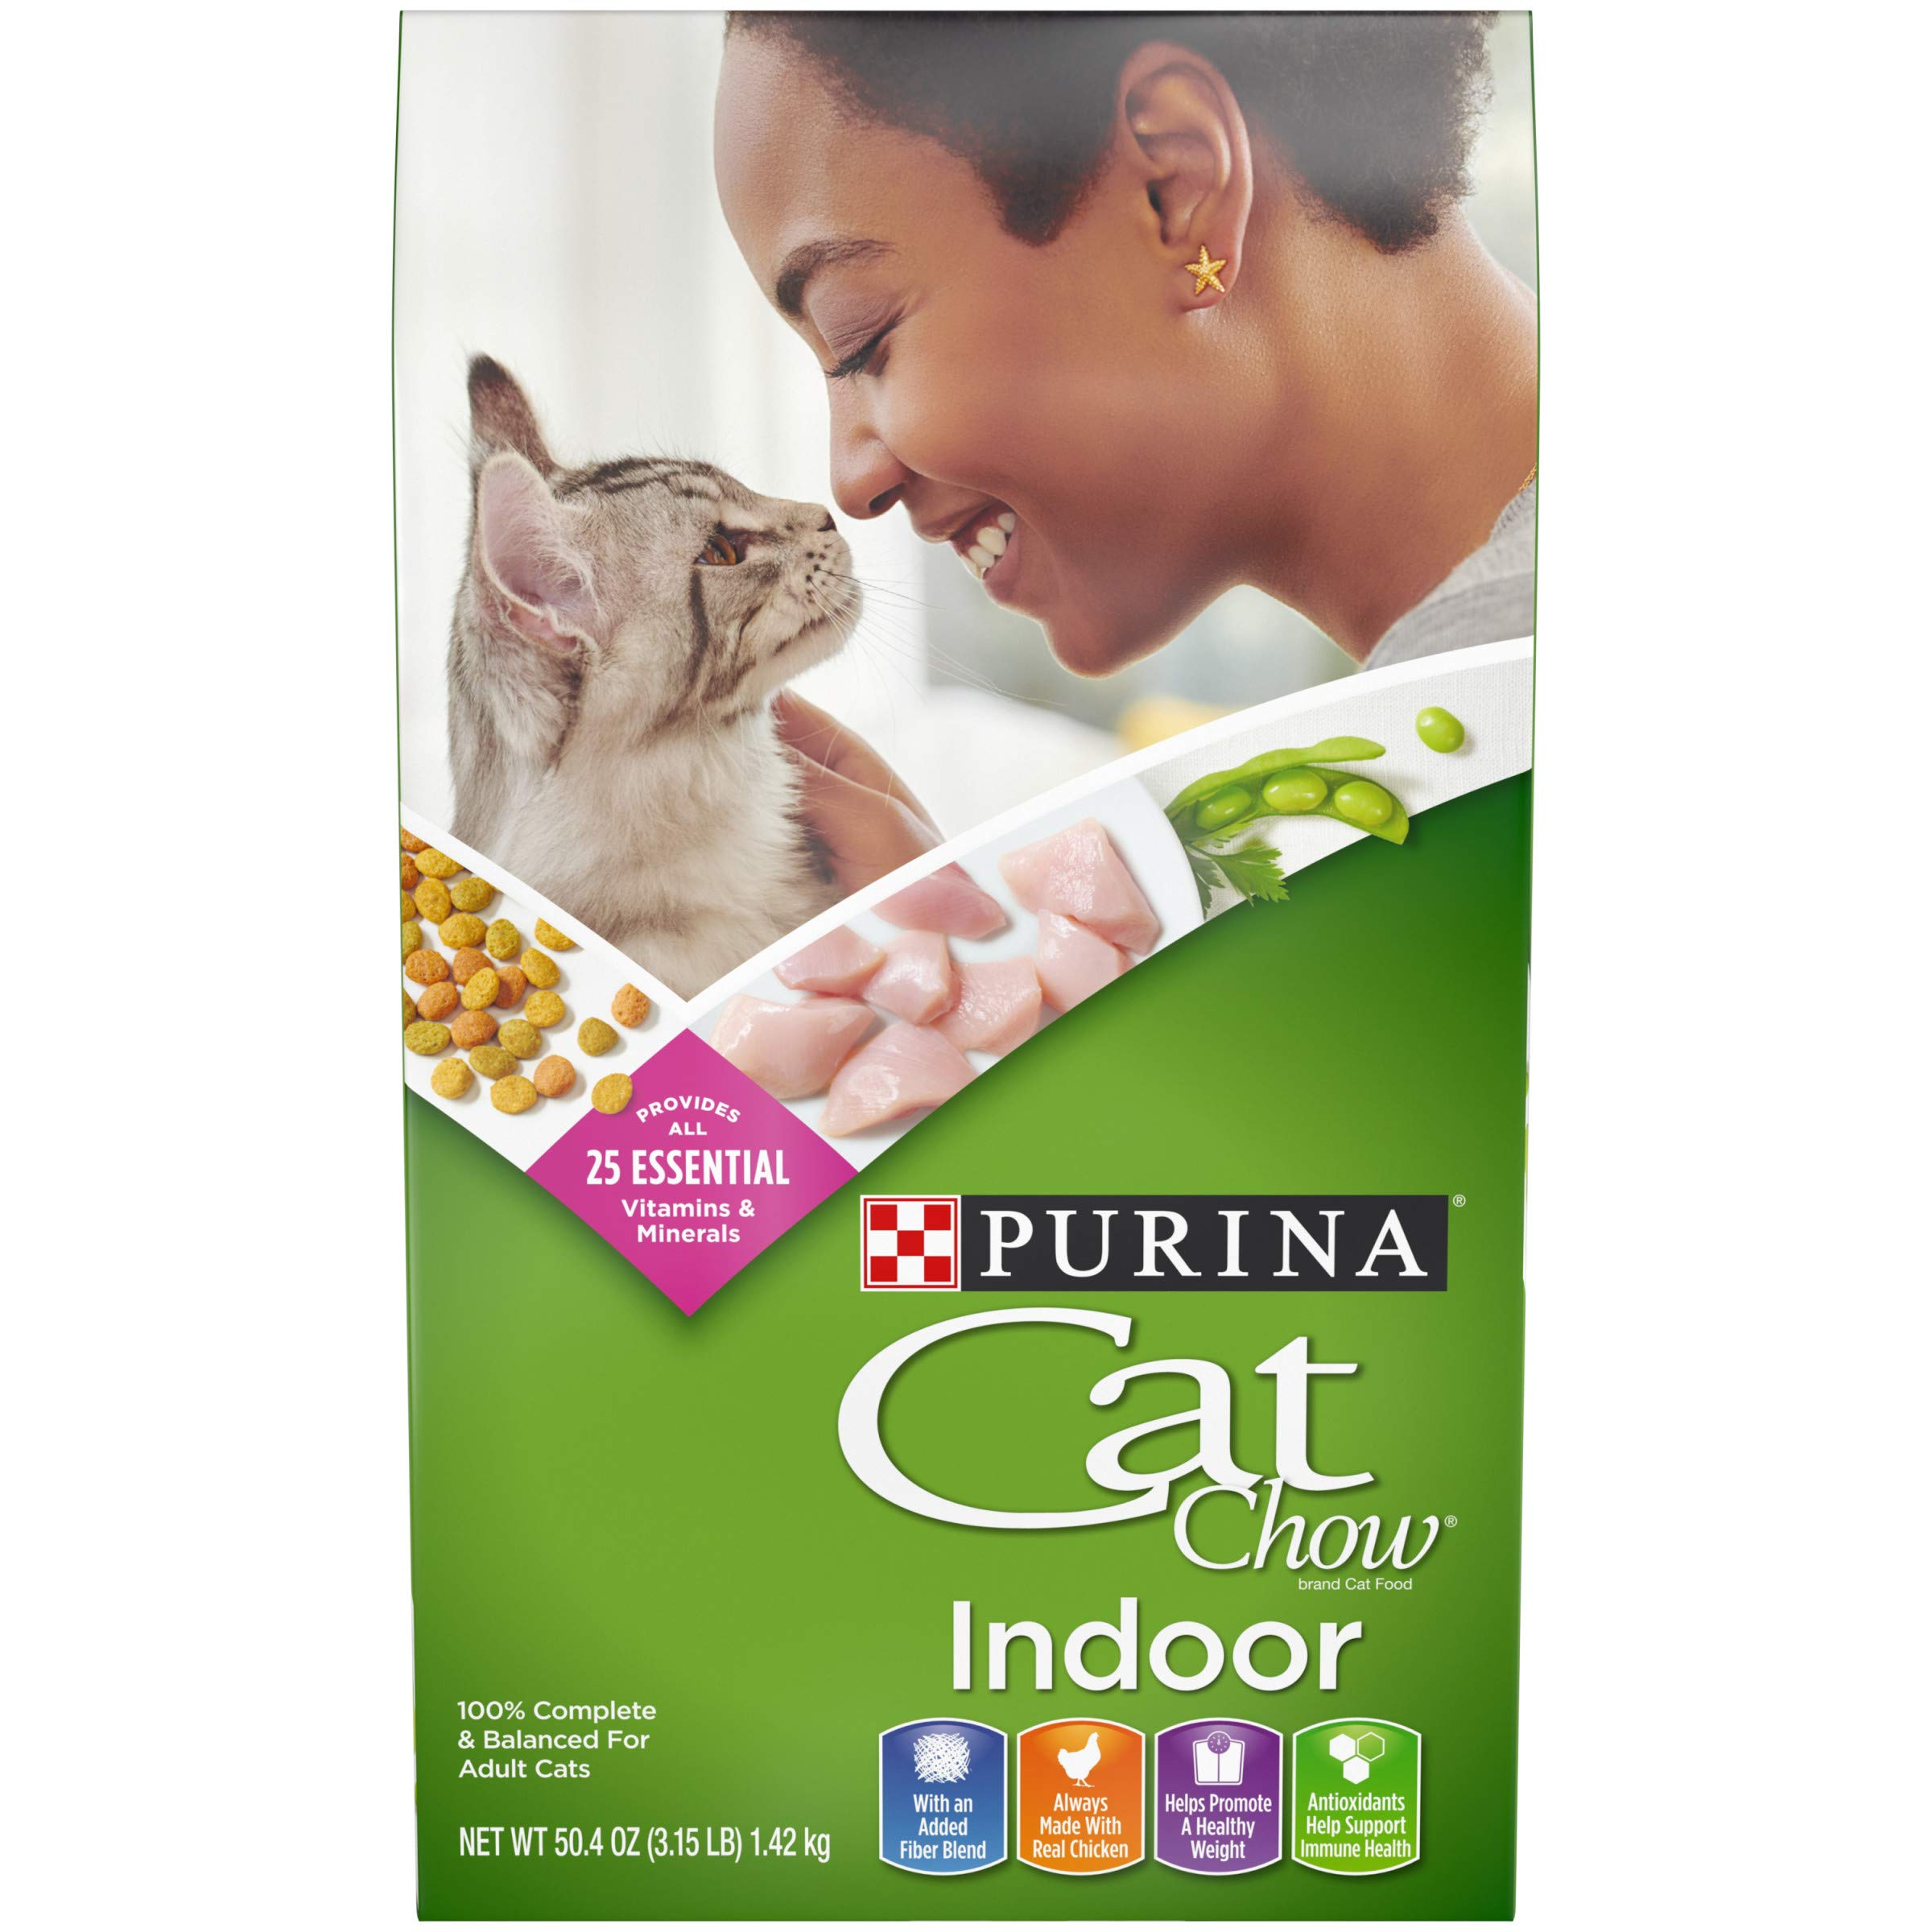 Purina Cat Chow Hairball, Healthy Weight, Indoor Dry Cat Food, Indoor - (4) 3.15 lb. Bags by Purina Cat Chow